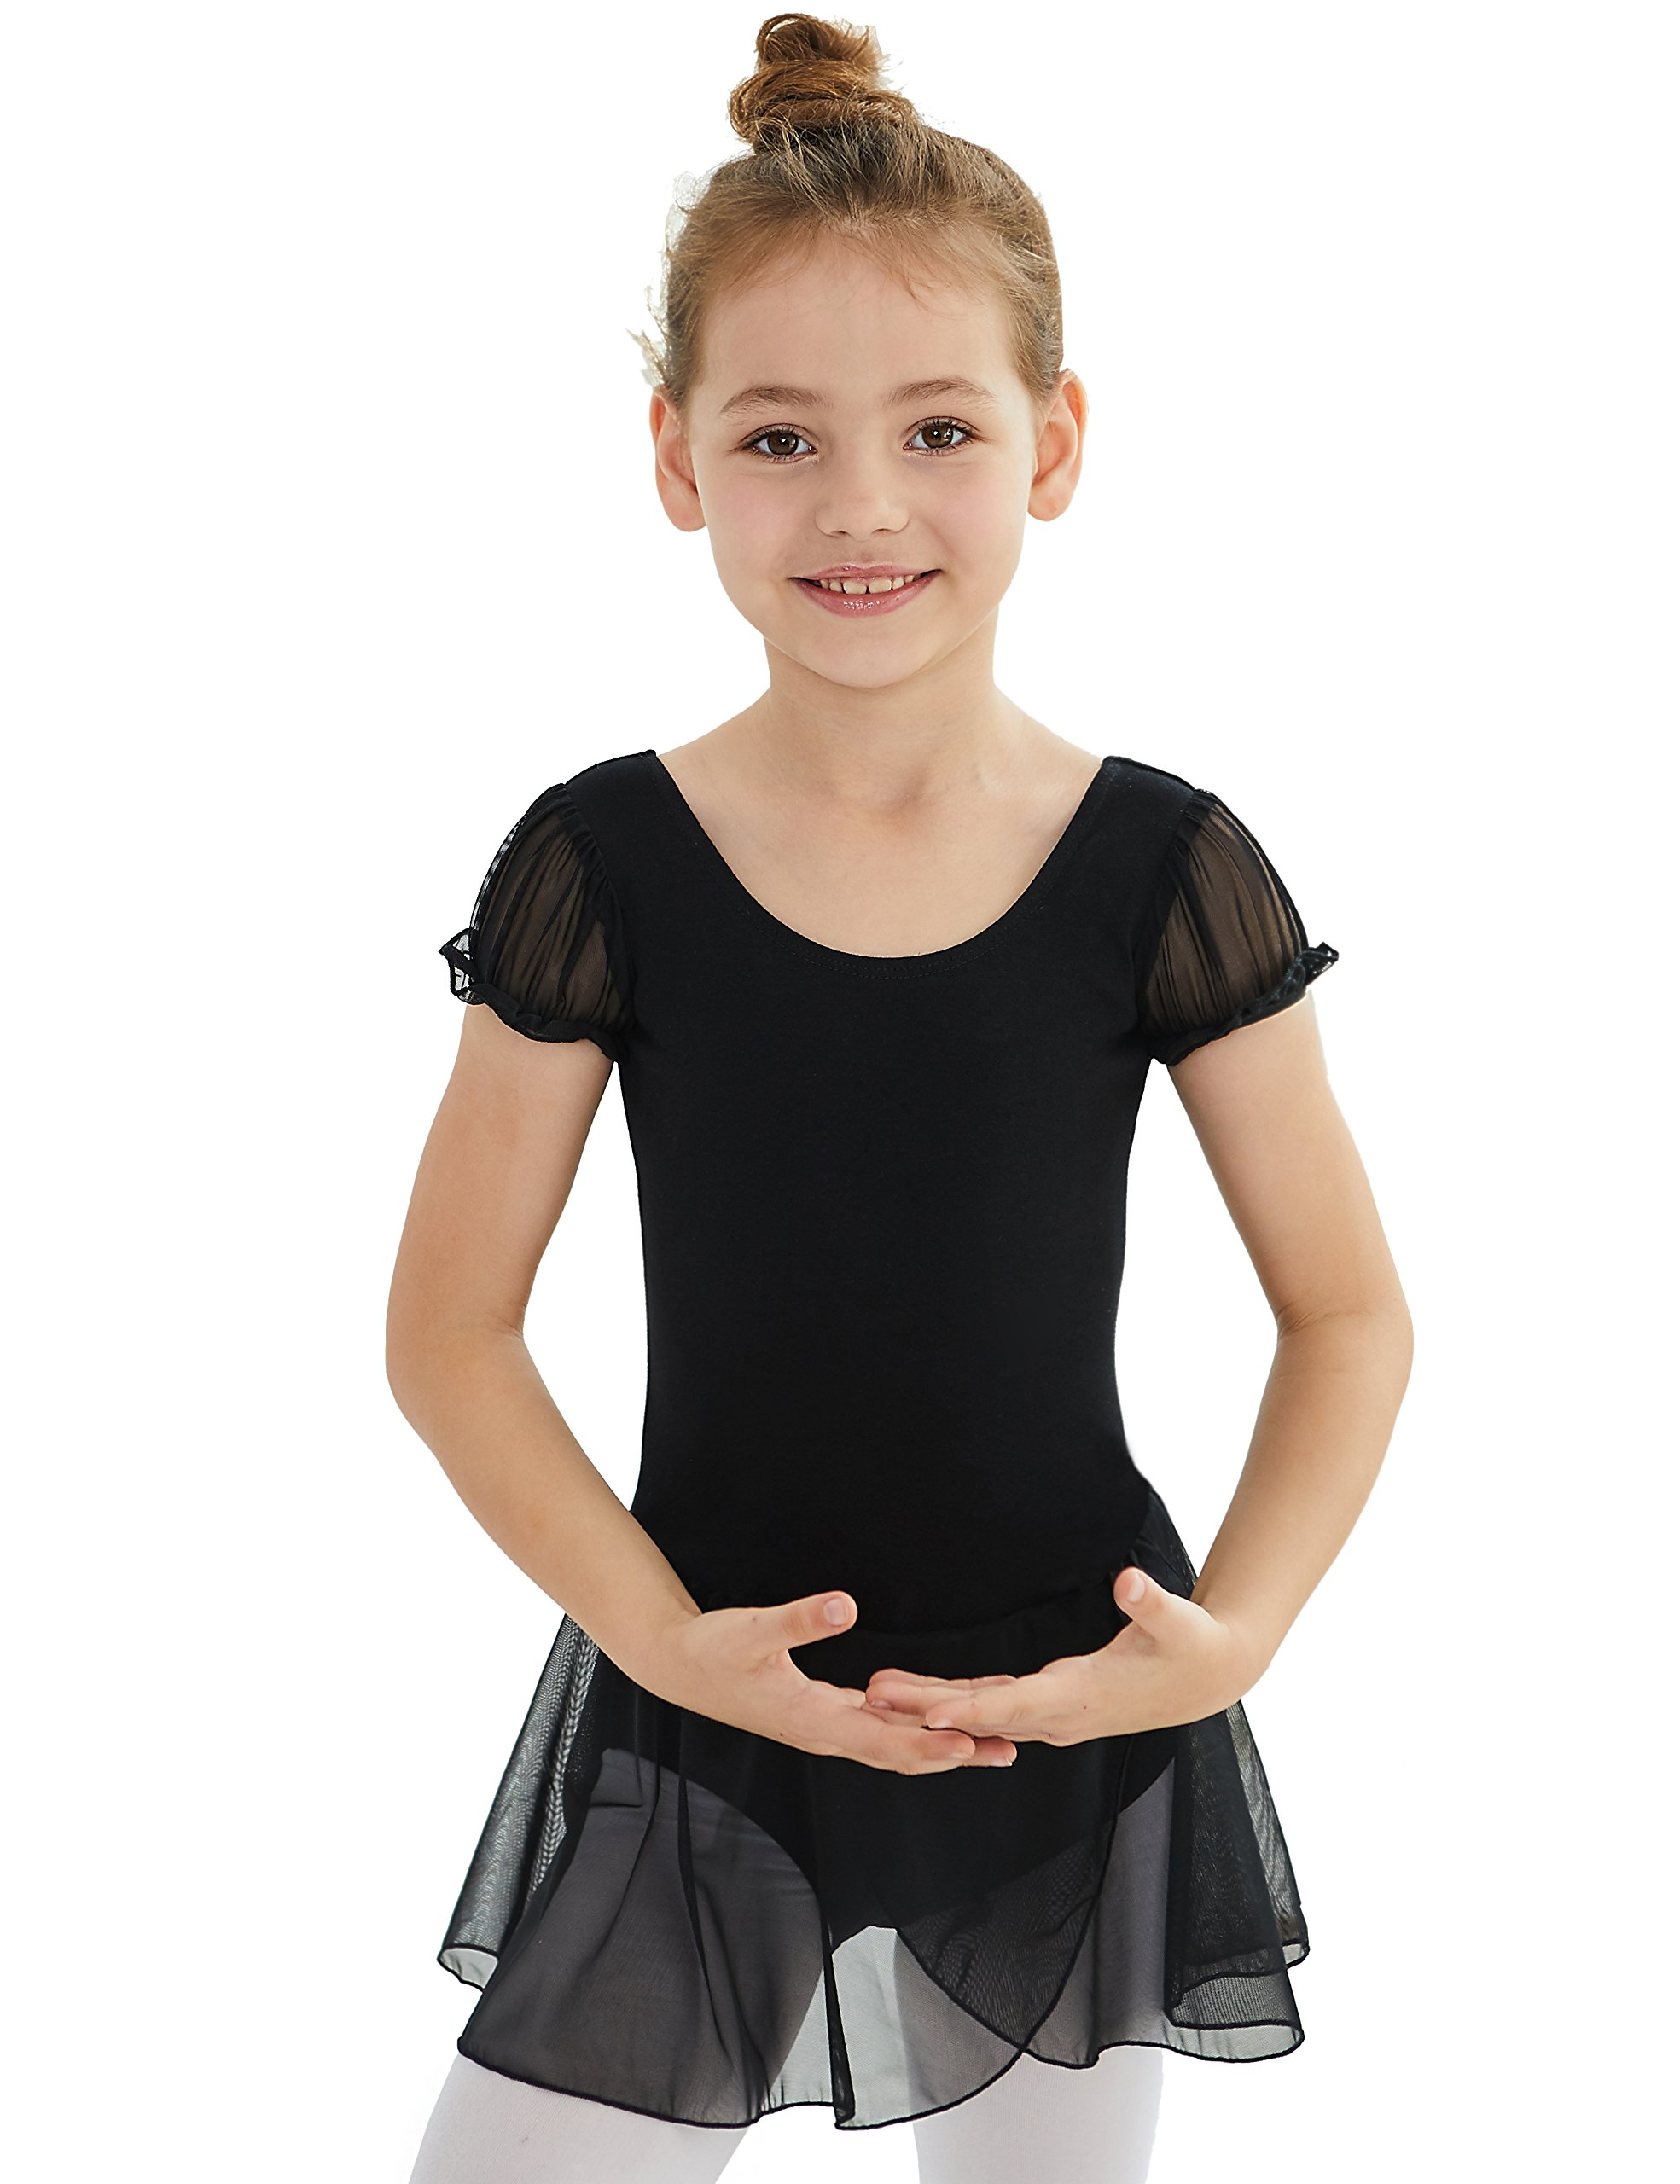 Mdnmd Dance Leotard For Little Girls With Flutter Short Sleeve Black Age 4t 6t Height 44 49